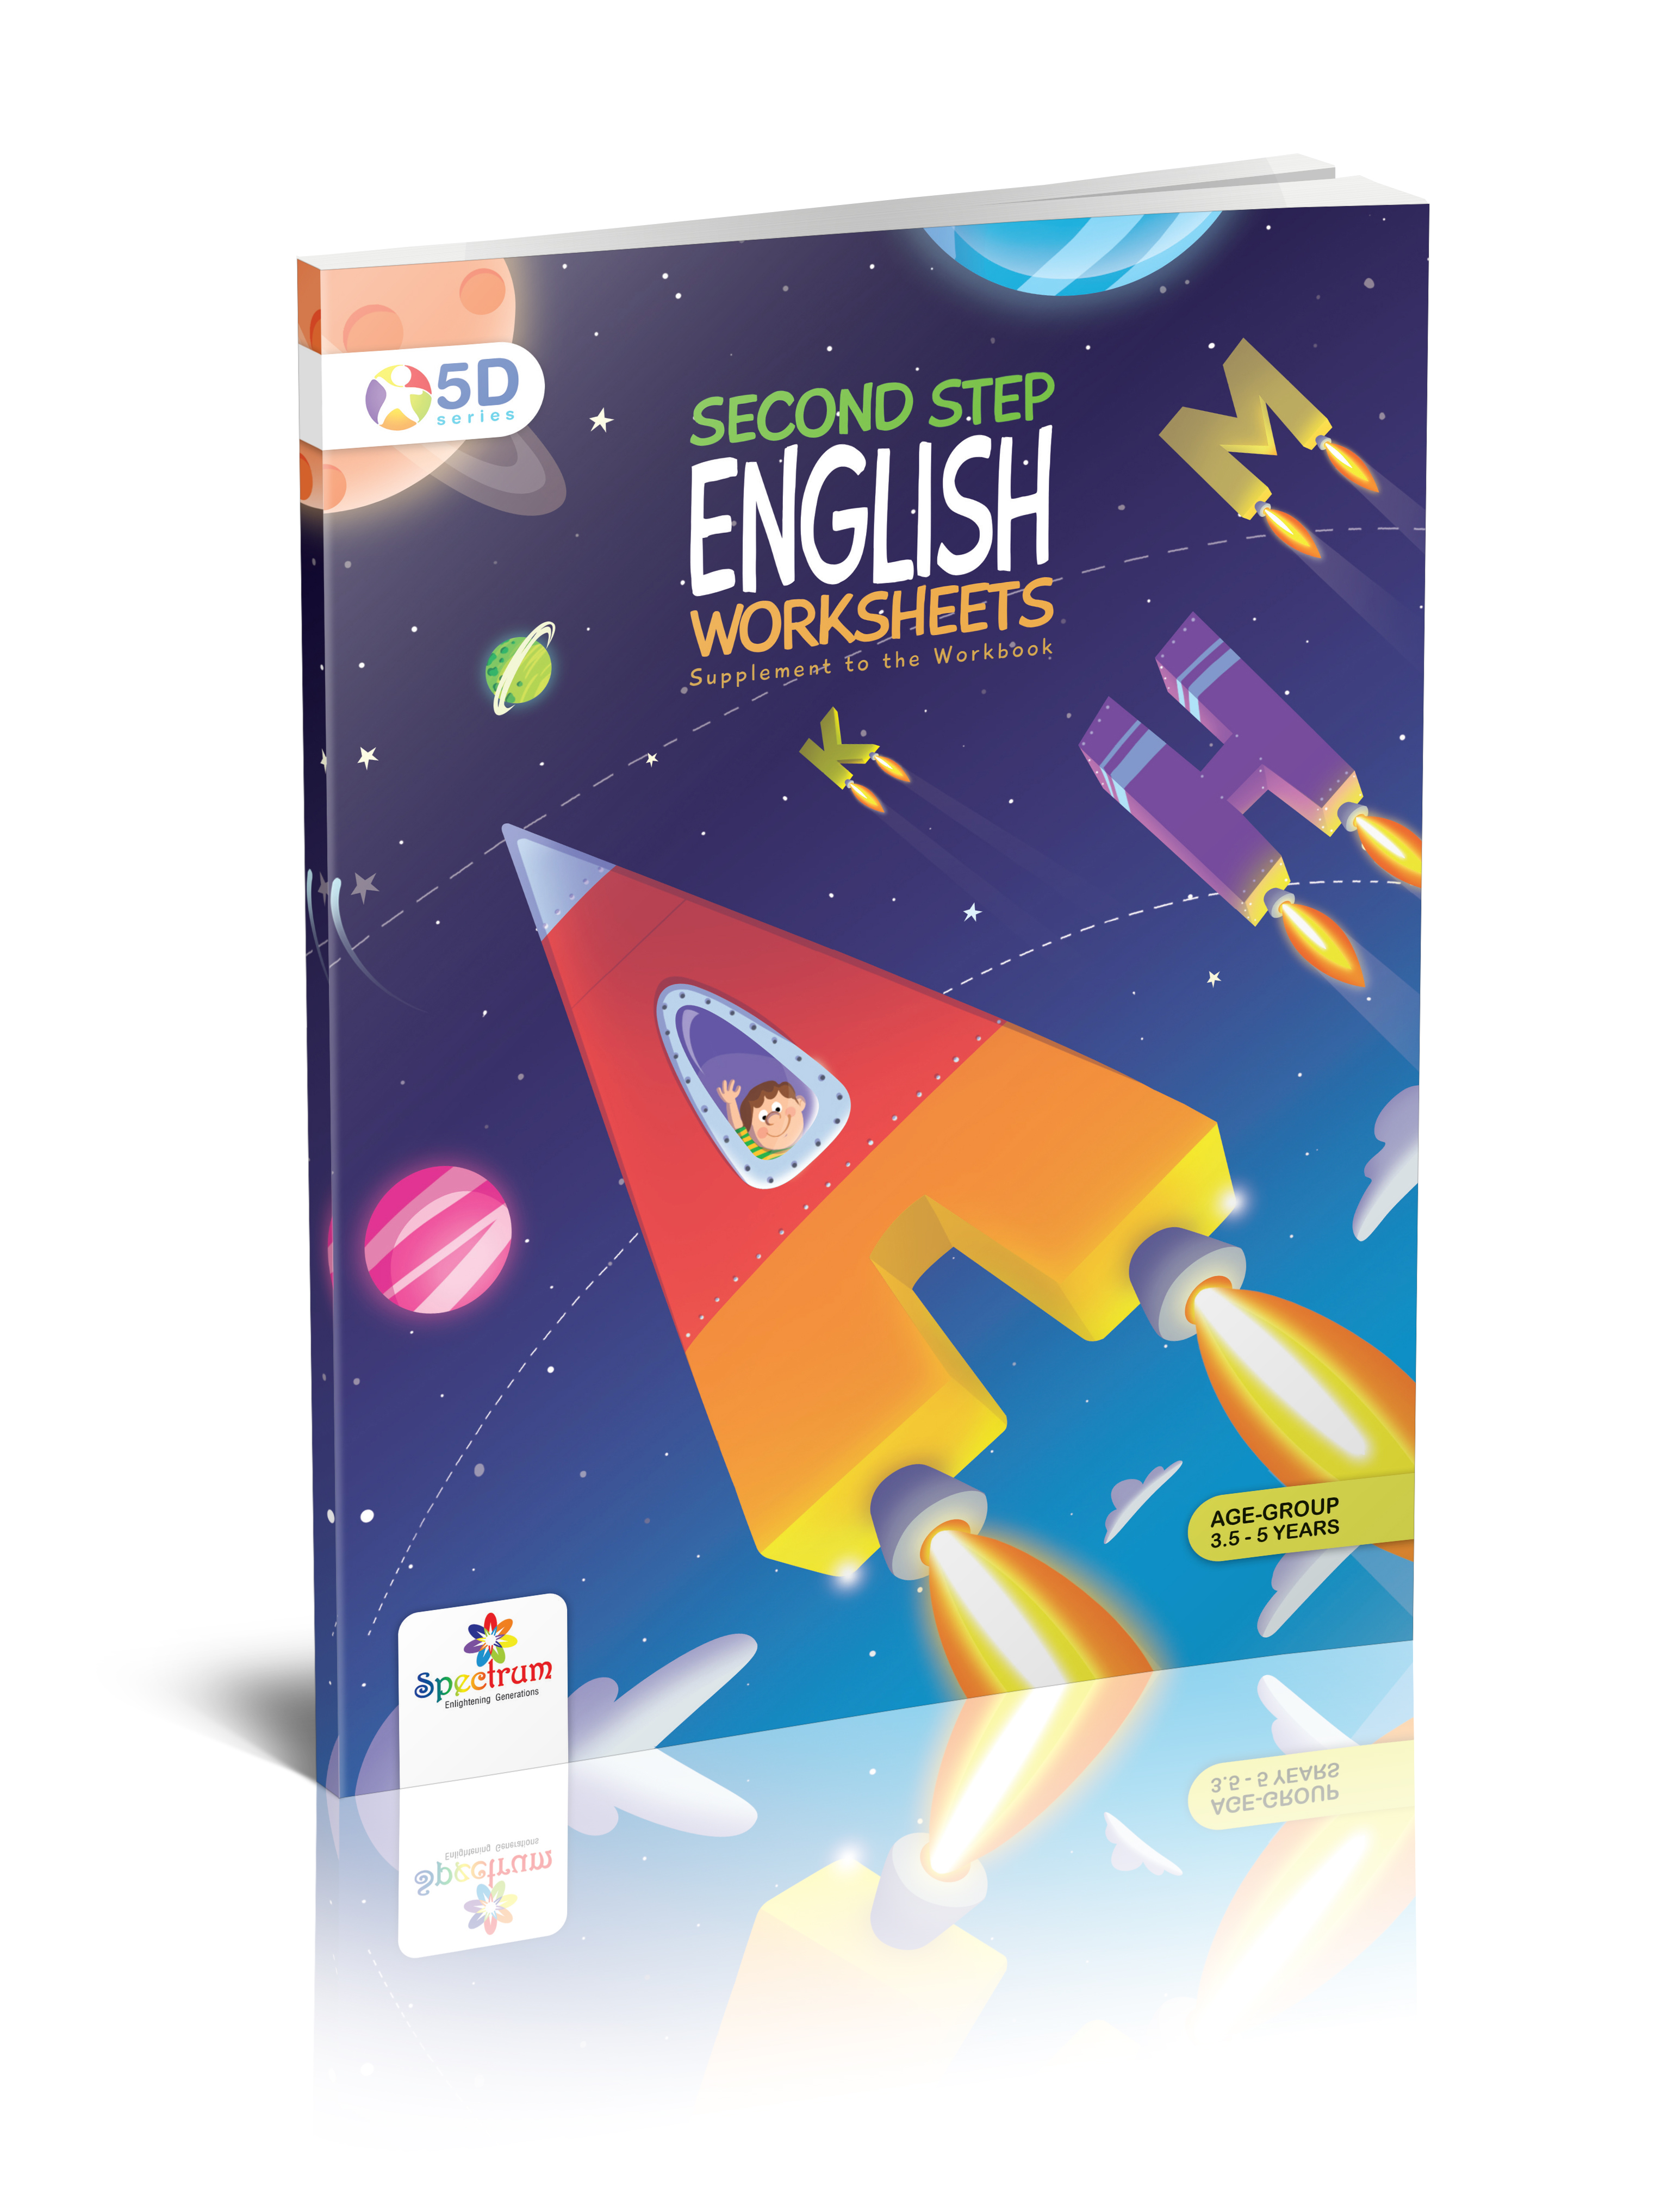 English Worksheets Second Step